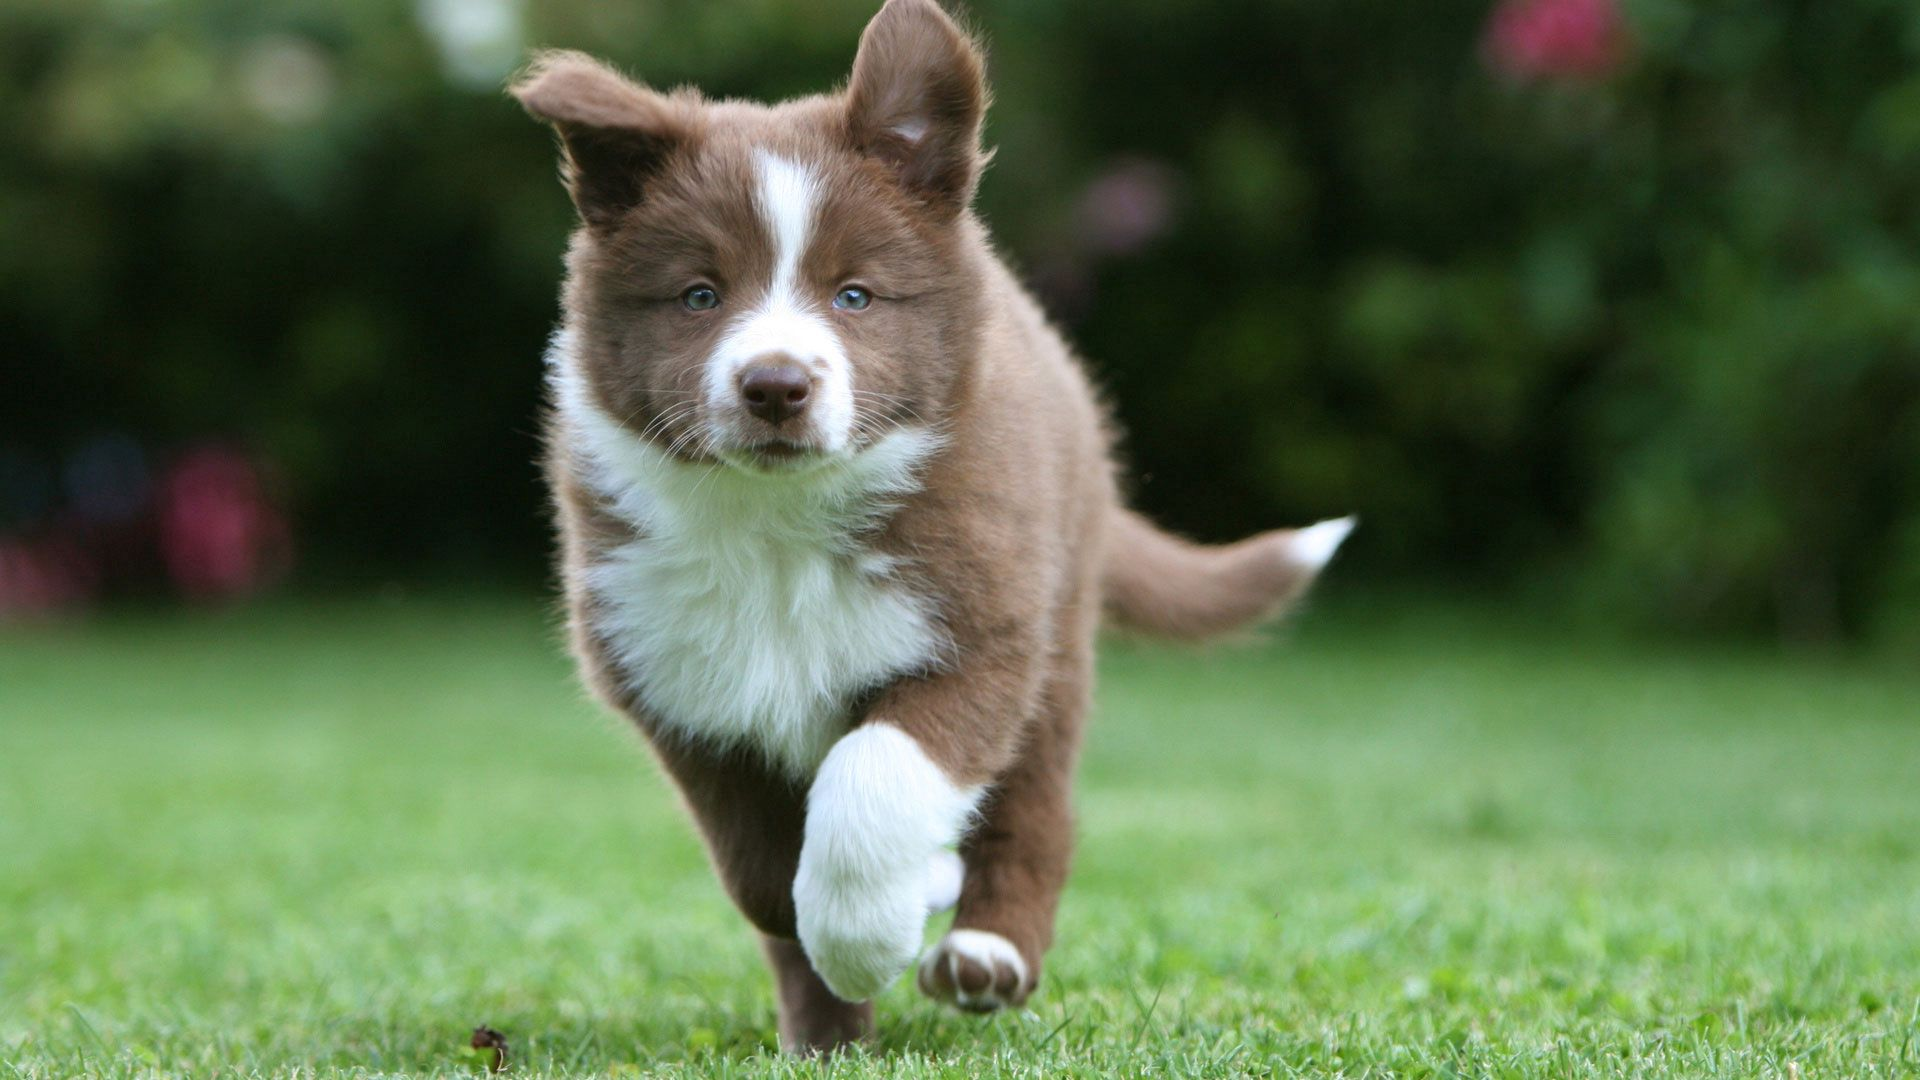 119452 download wallpaper Animals, Border Collie, Puppy, Run, Running, Grass screensavers and pictures for free